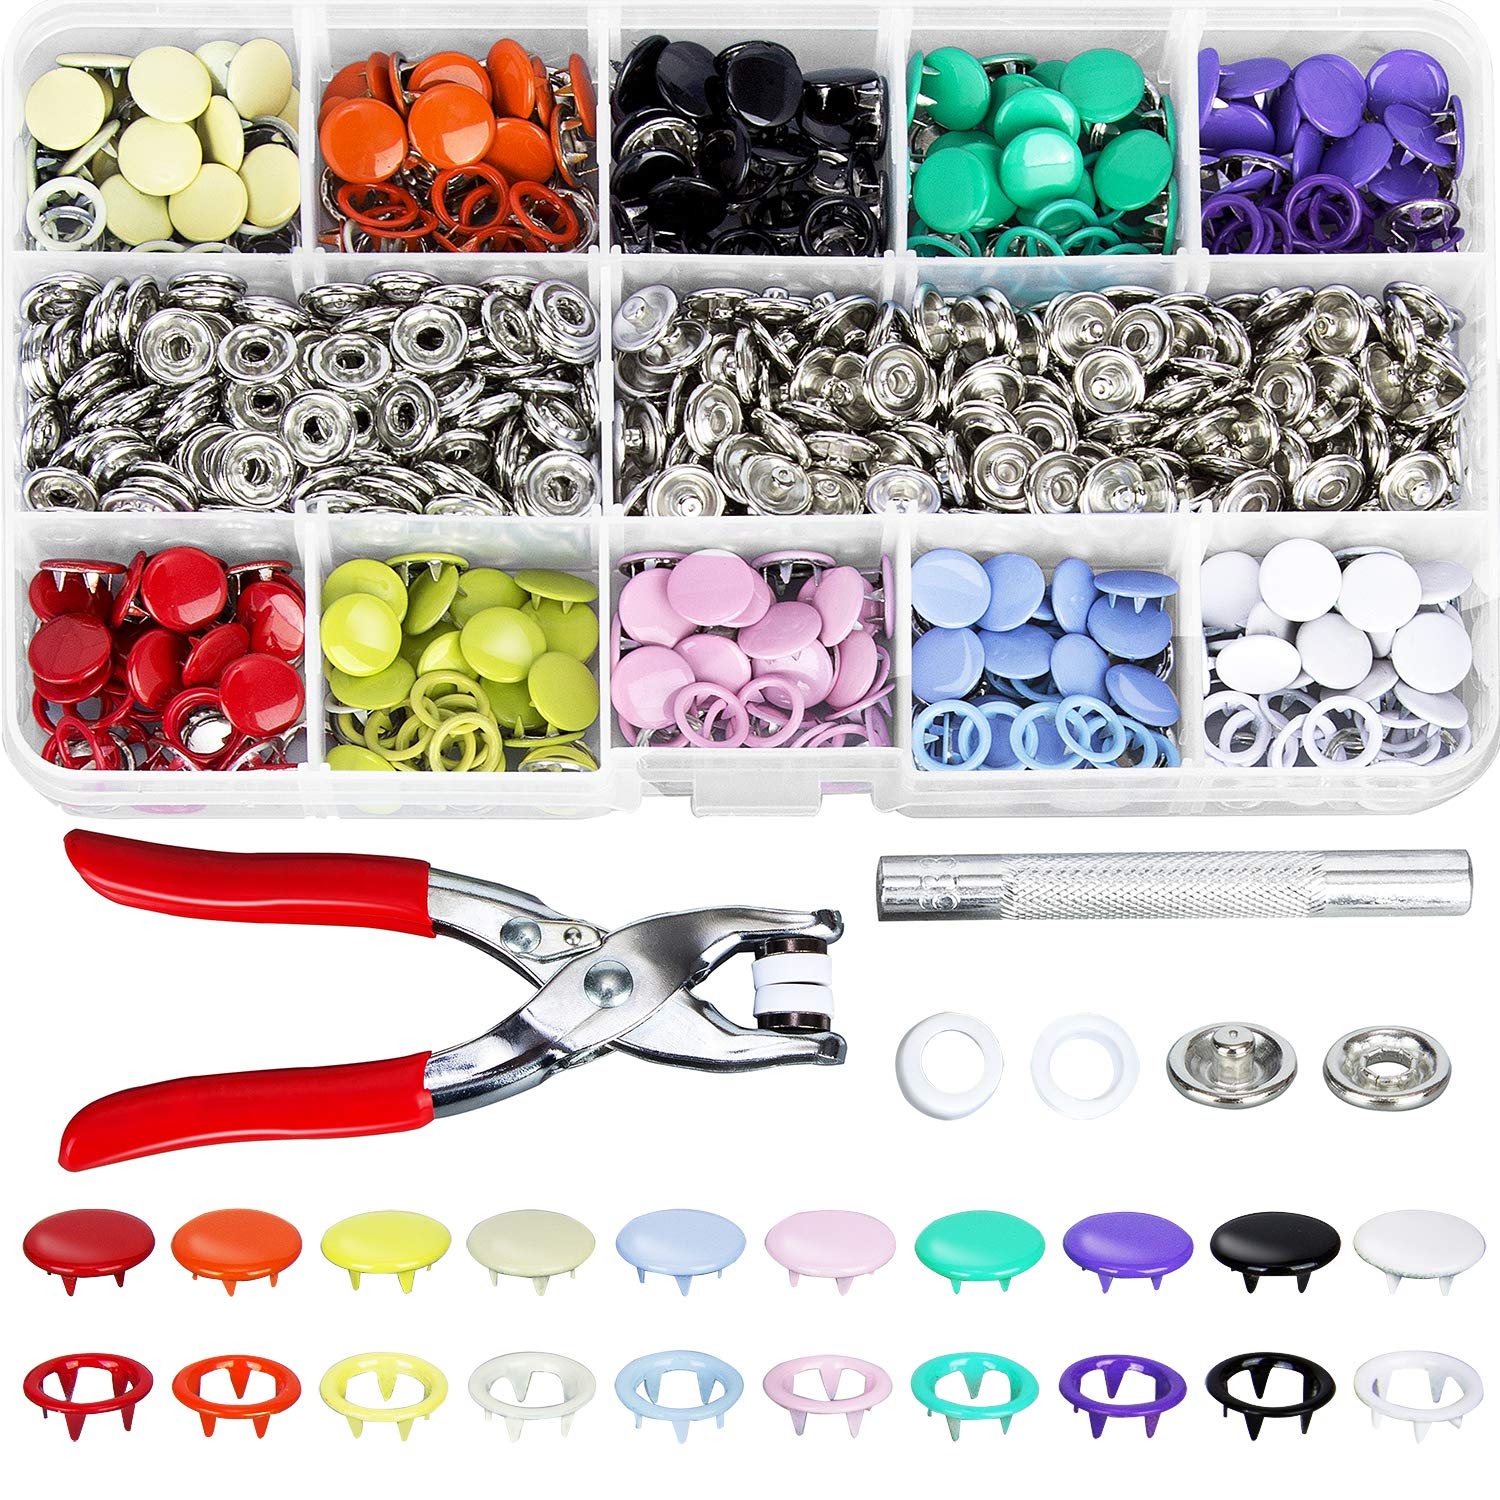 K Kwokker 200 Set Grommets Snap Fasteners Kit Leather Rivets Buttons Metal Press Studs 9.5mm 10 Colors Environmentally Metal Prong Ring Button for Leather, Coat, Down Jacket, Jeans Clothing